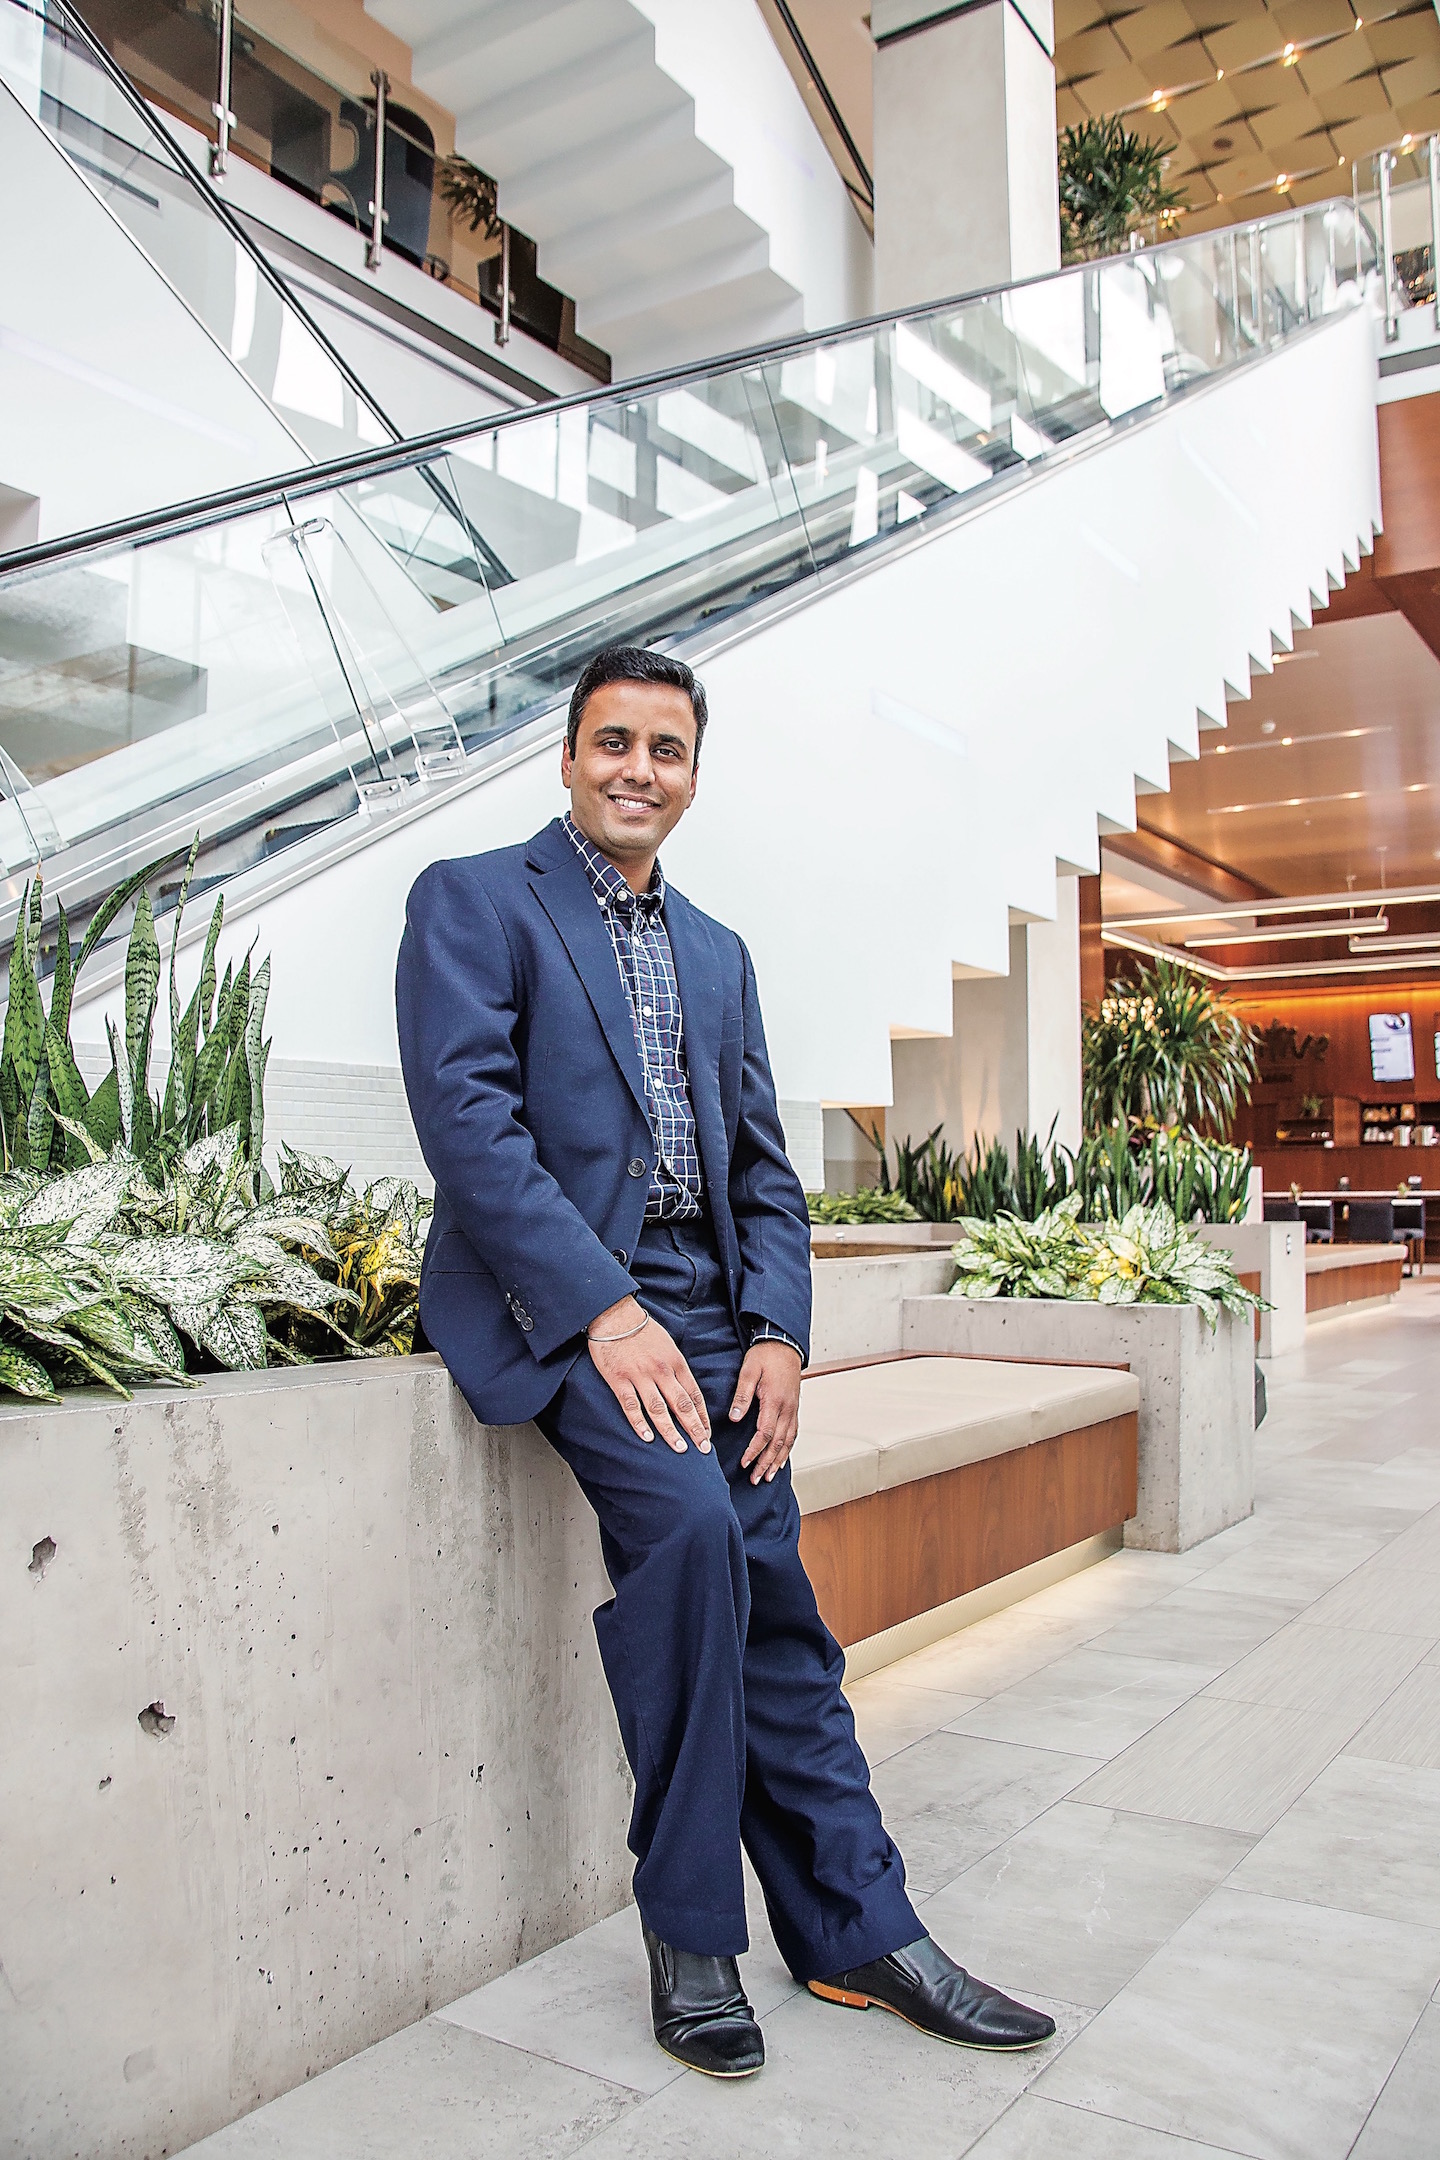 Pratik Kothari, TechArk Solutions Founder & CEO, Hilton Norfolk The Main, Millennials on the Move